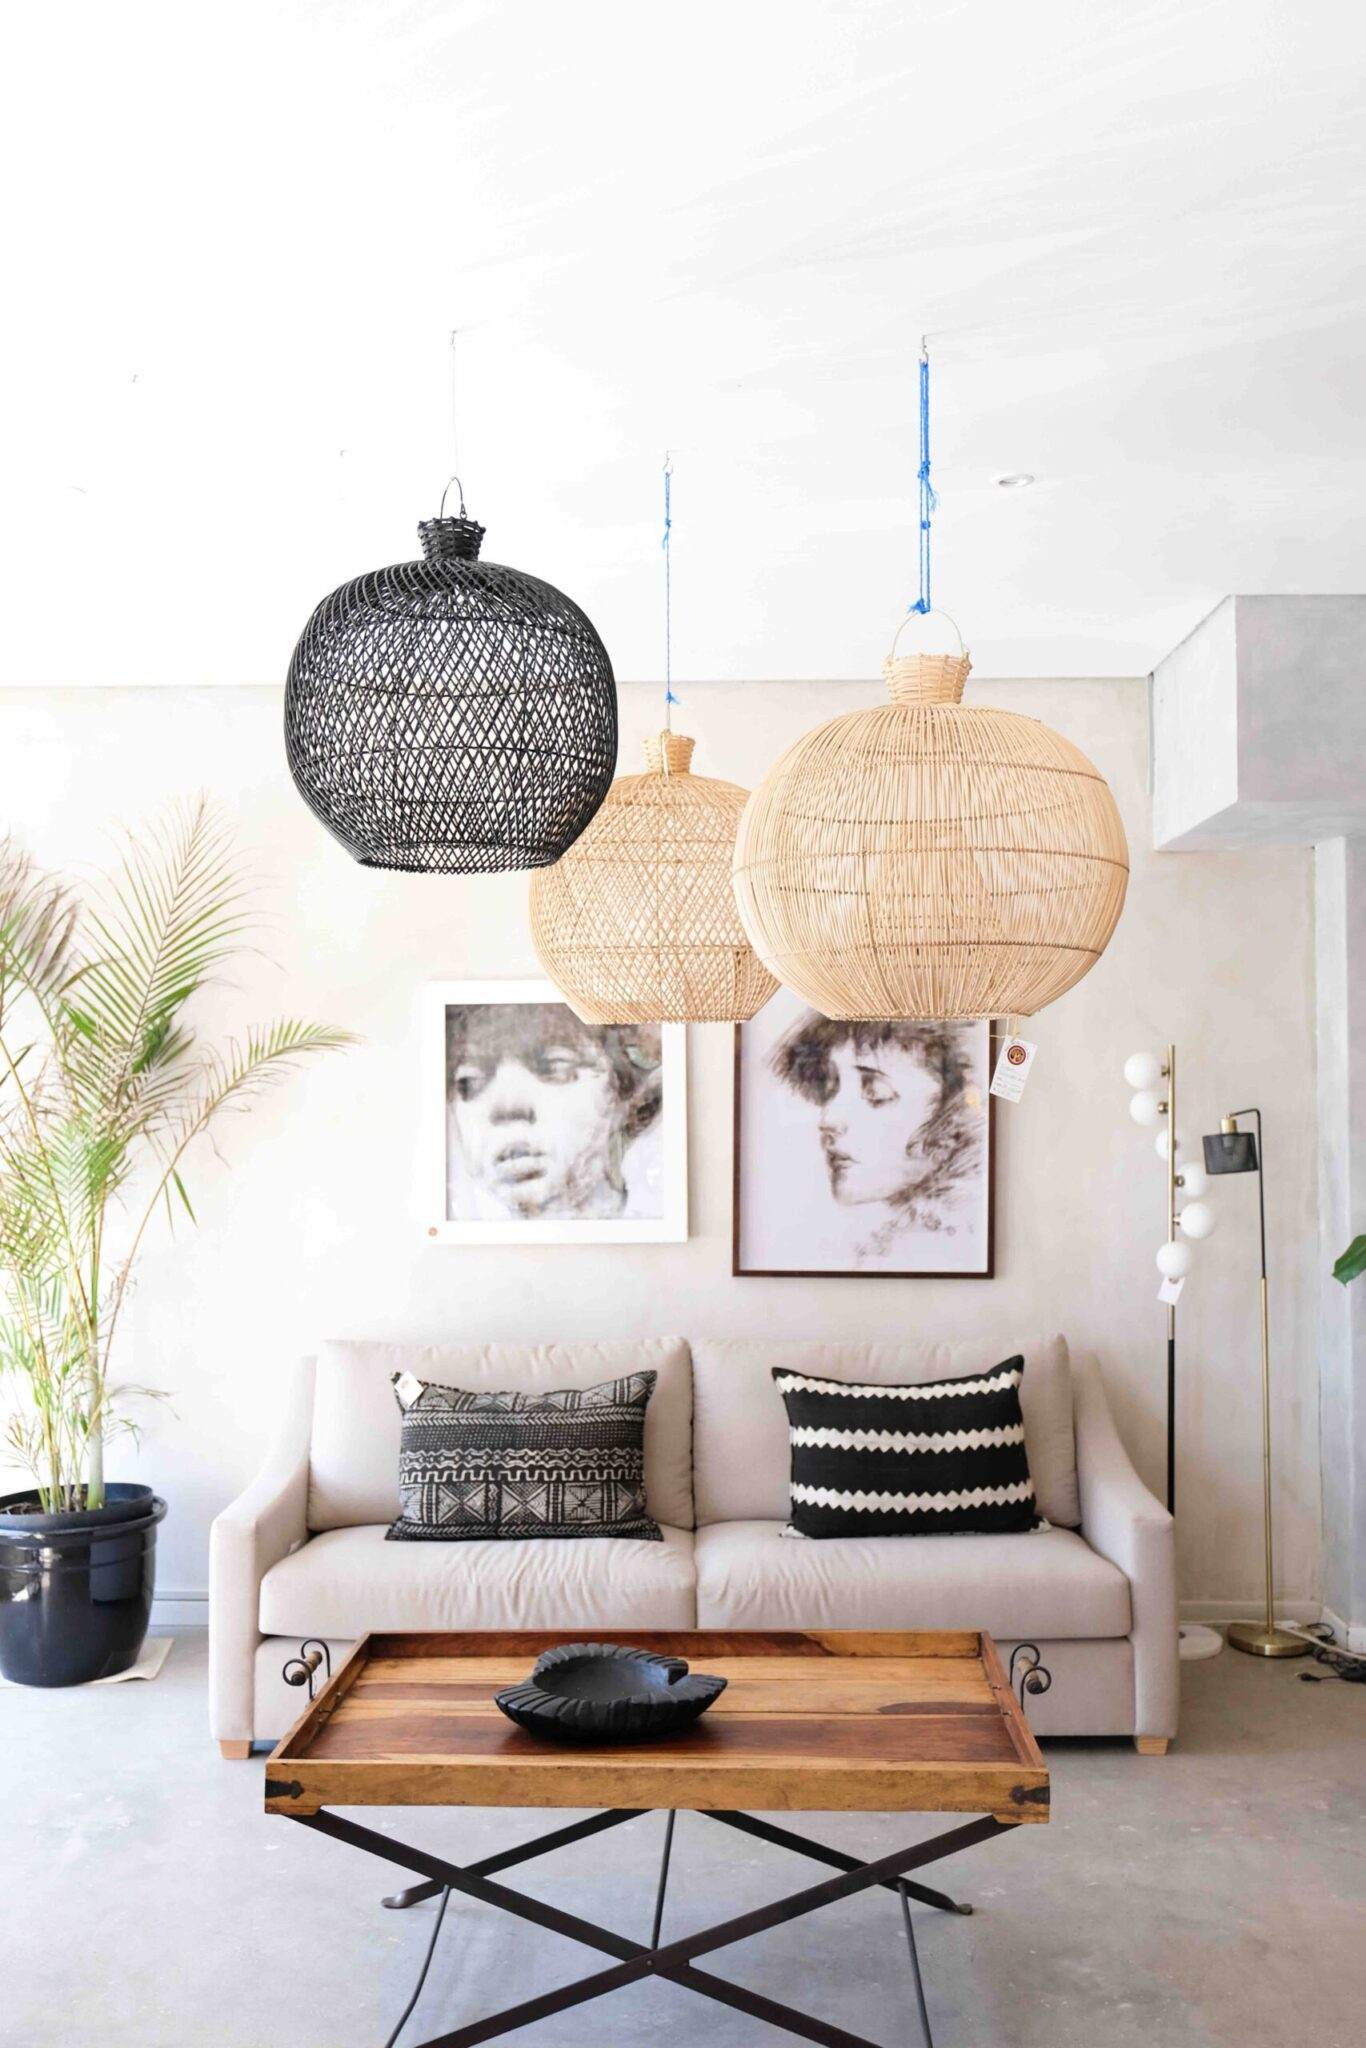 Our Top 5 Decorating tips for creating a beautiful space.